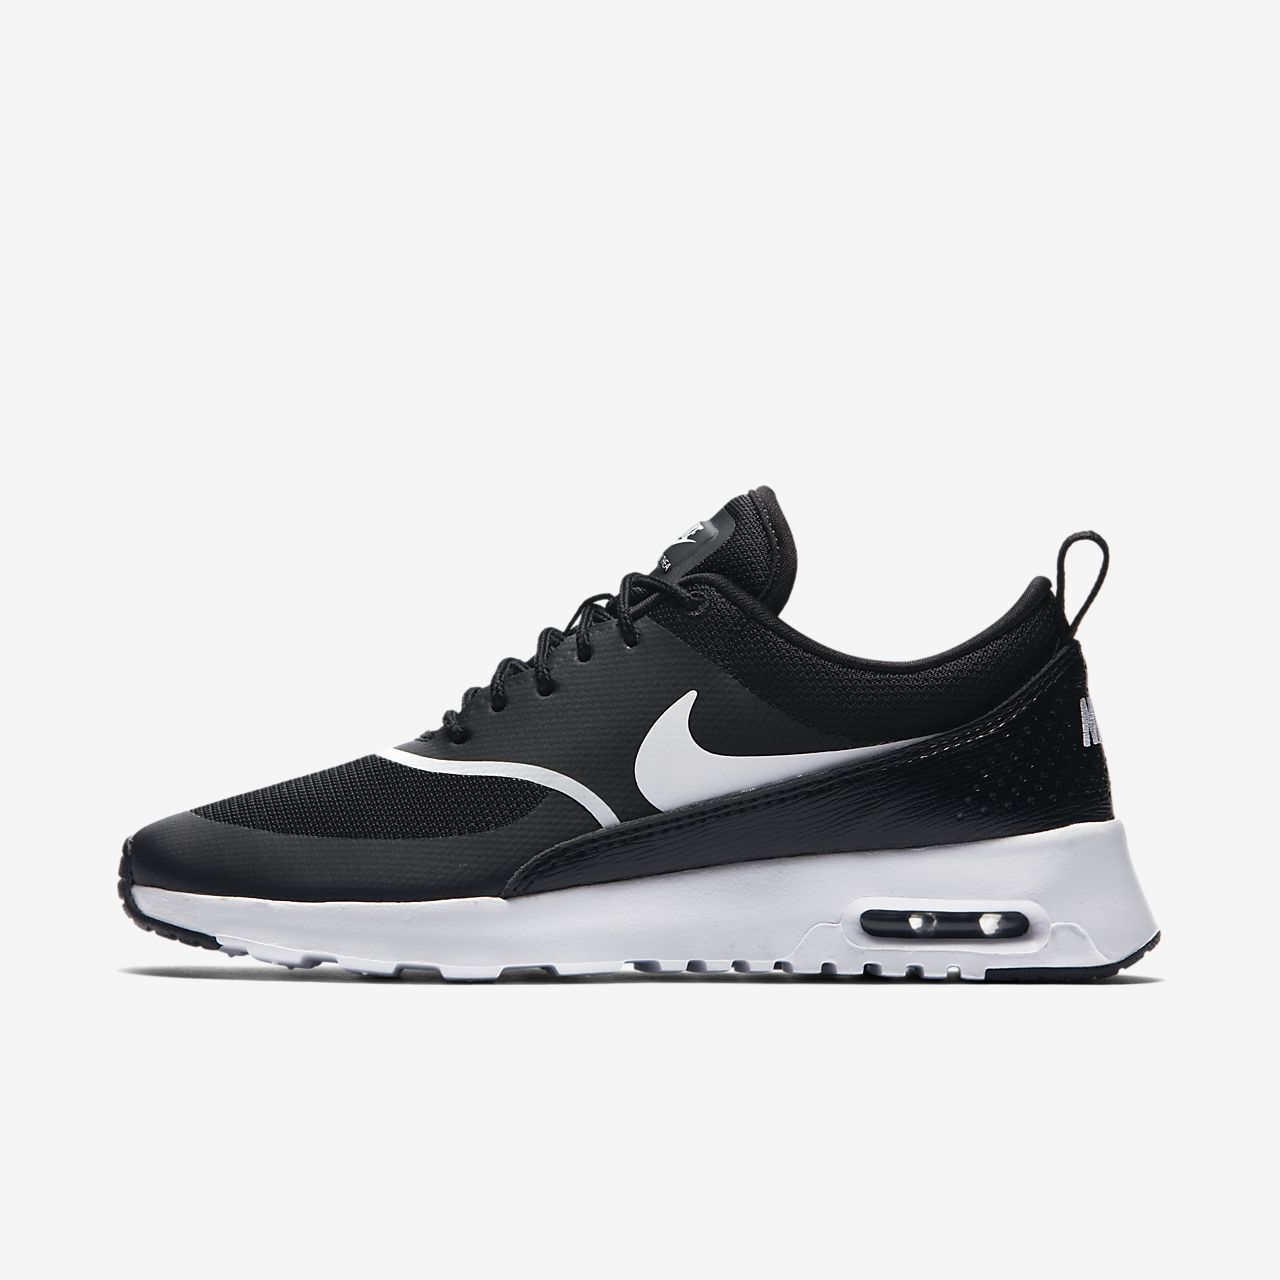 new products 49f14 91393 Women s Shoe. Nike Air Max Thea